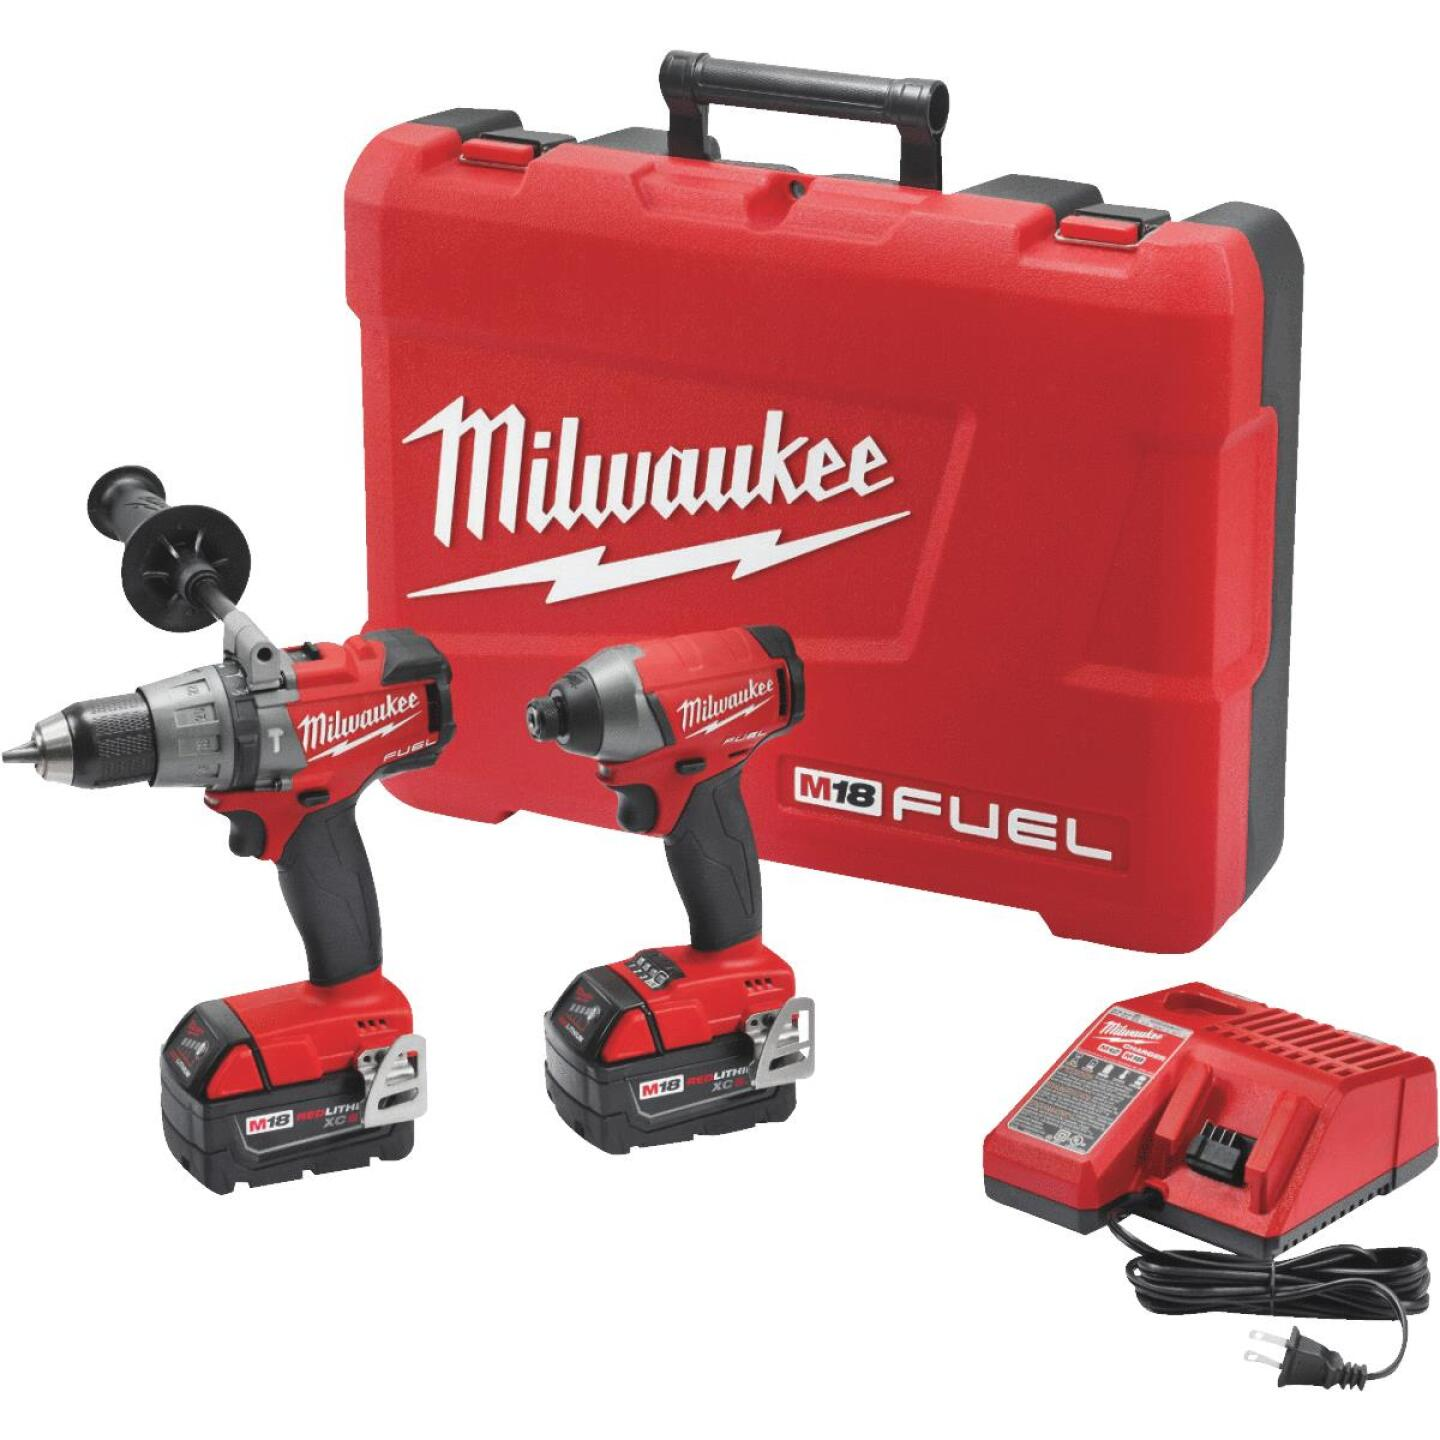 Milwaukee 2-Tool M18 FUEL Lithium-Ion Brushless Hammer Drill & Impact Driver Cordless Tool Combo Kit Image 1